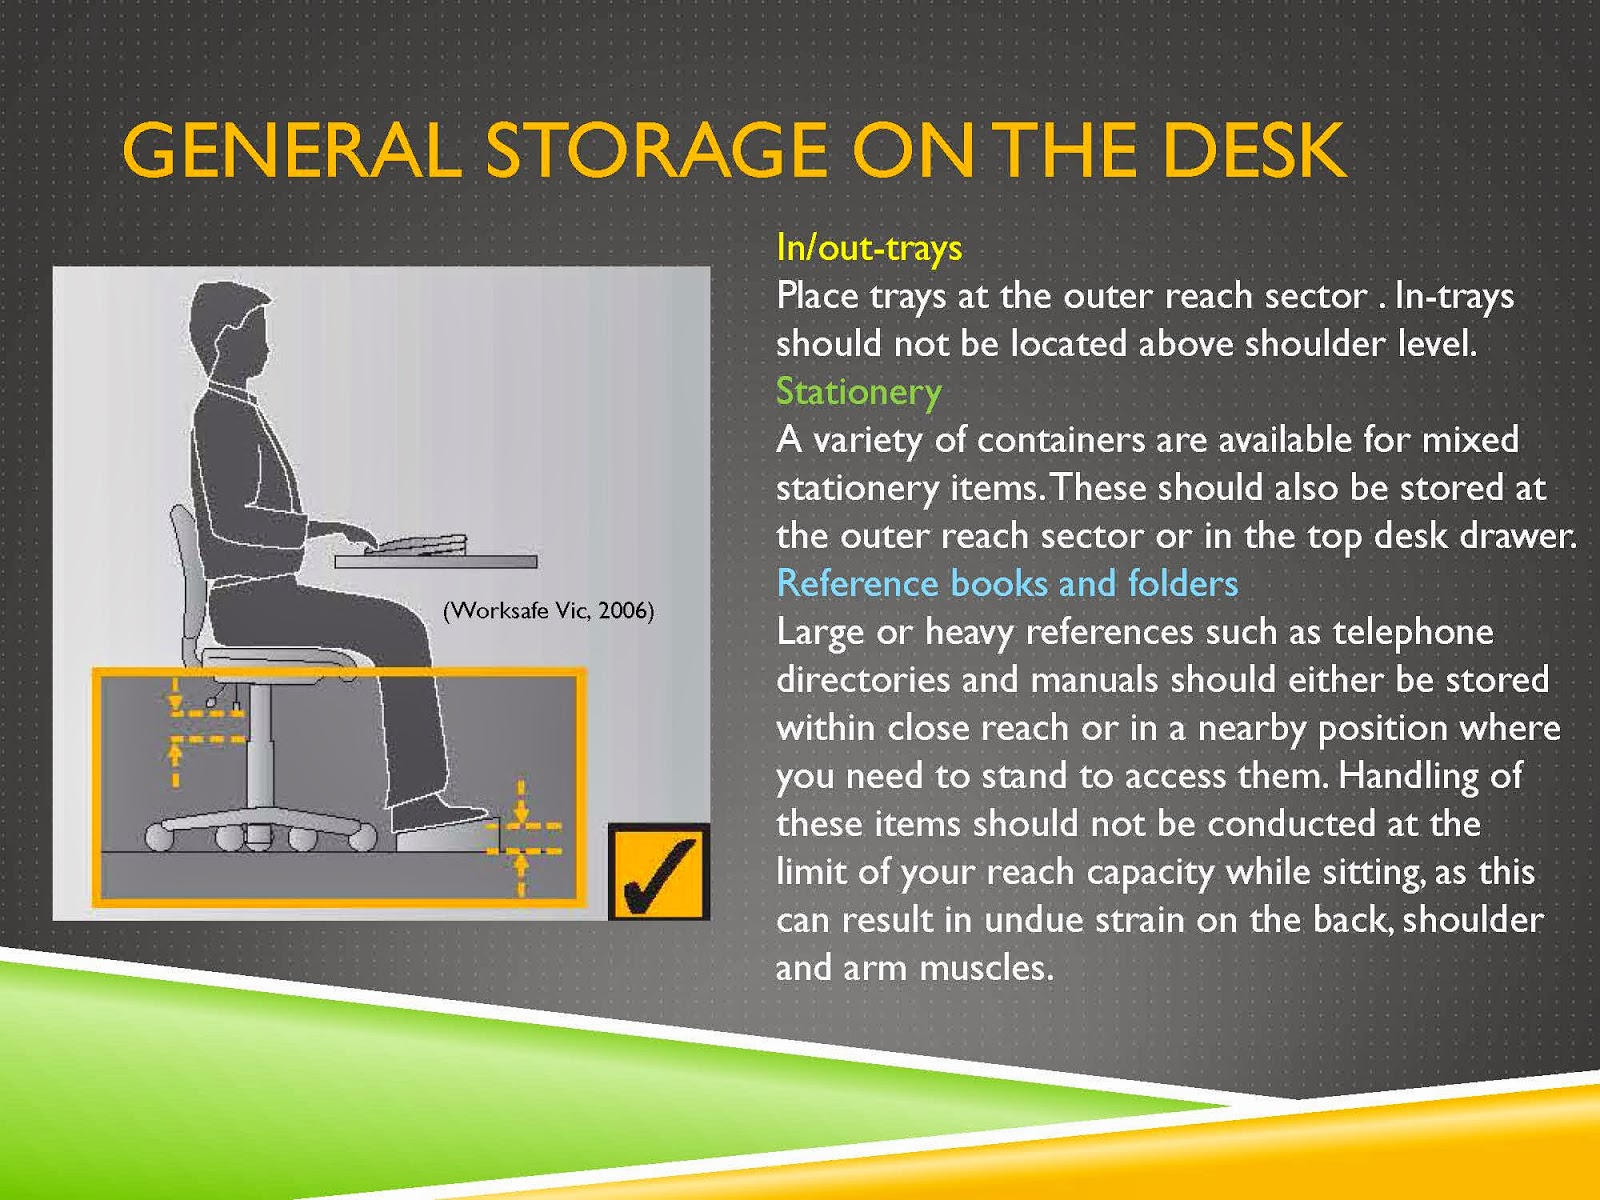 GENERAL STORAGE ON THE DESK